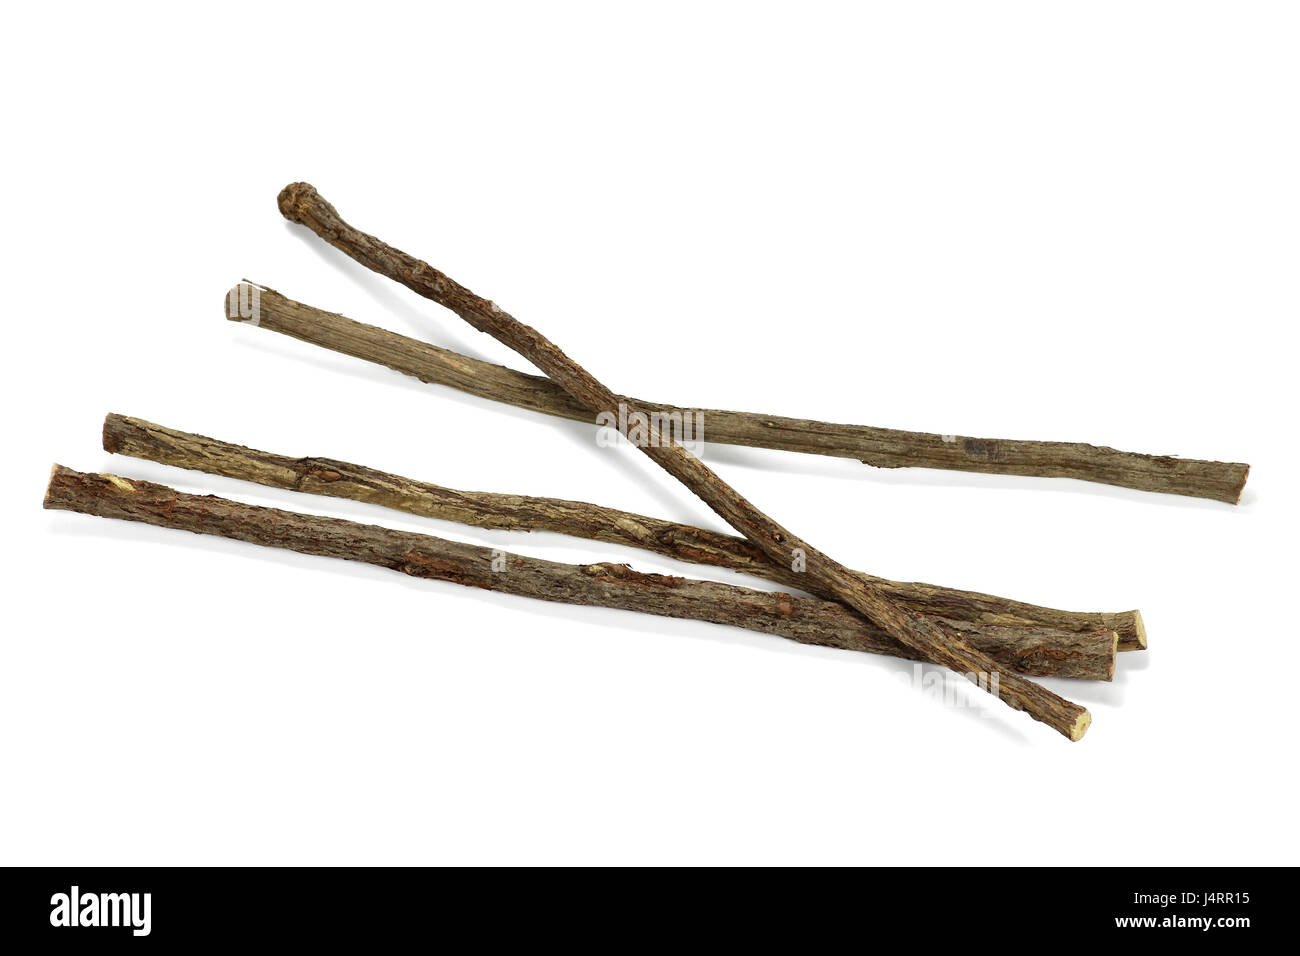 dried sticks of liquorice root isolated on white background - Stock Image